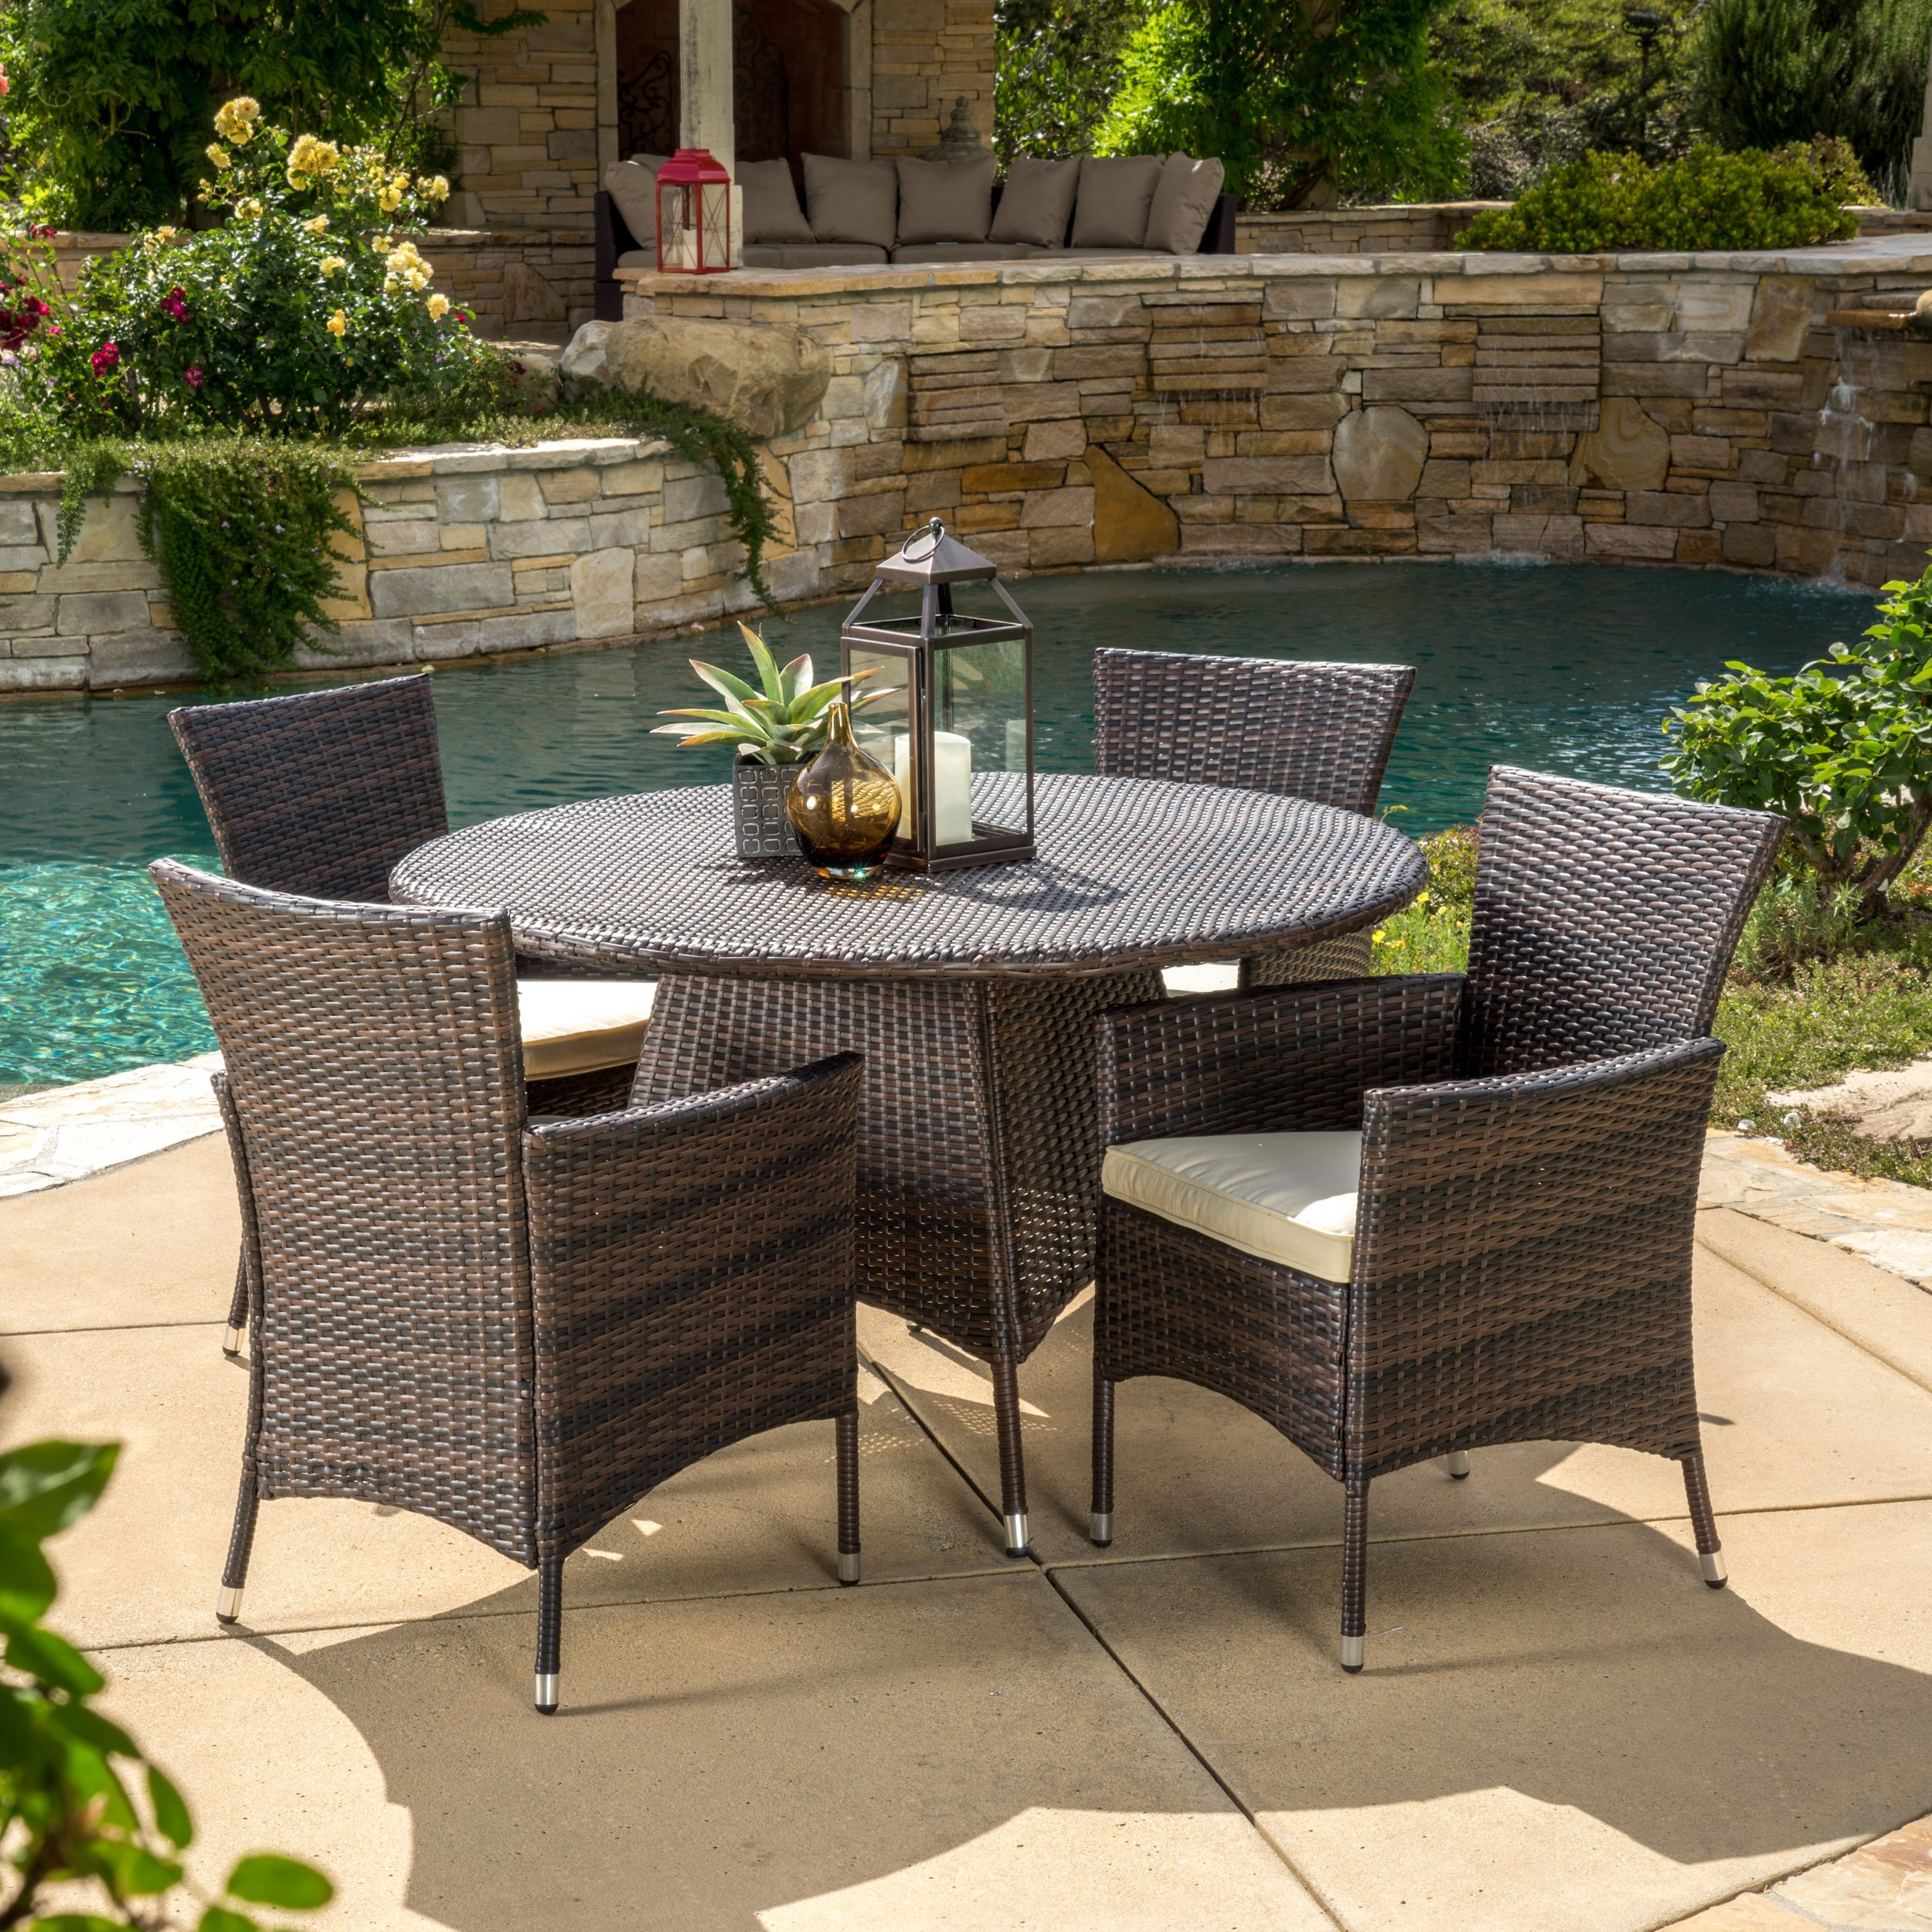 Good Deal Furniture: Great Deal Furniture Clementine Outdoor 5pc